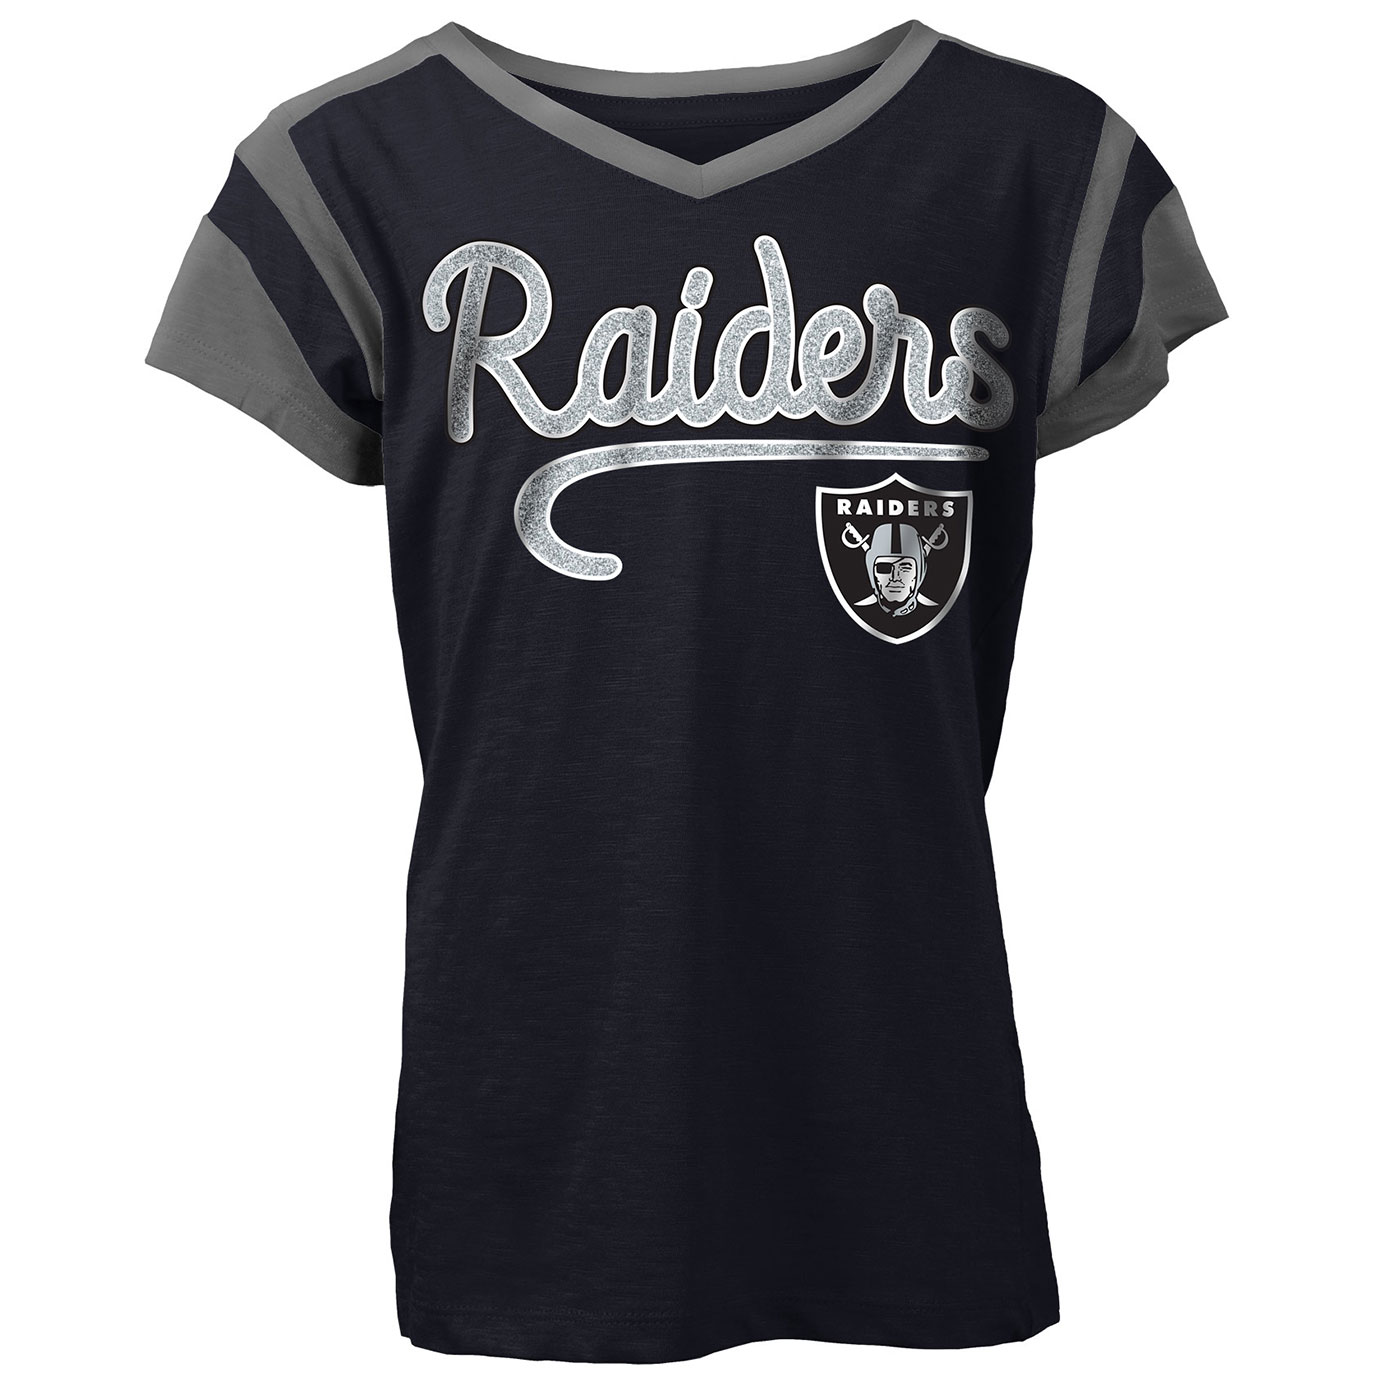 The Raider Image The ficial Store for Oakland Raiders Merchandise